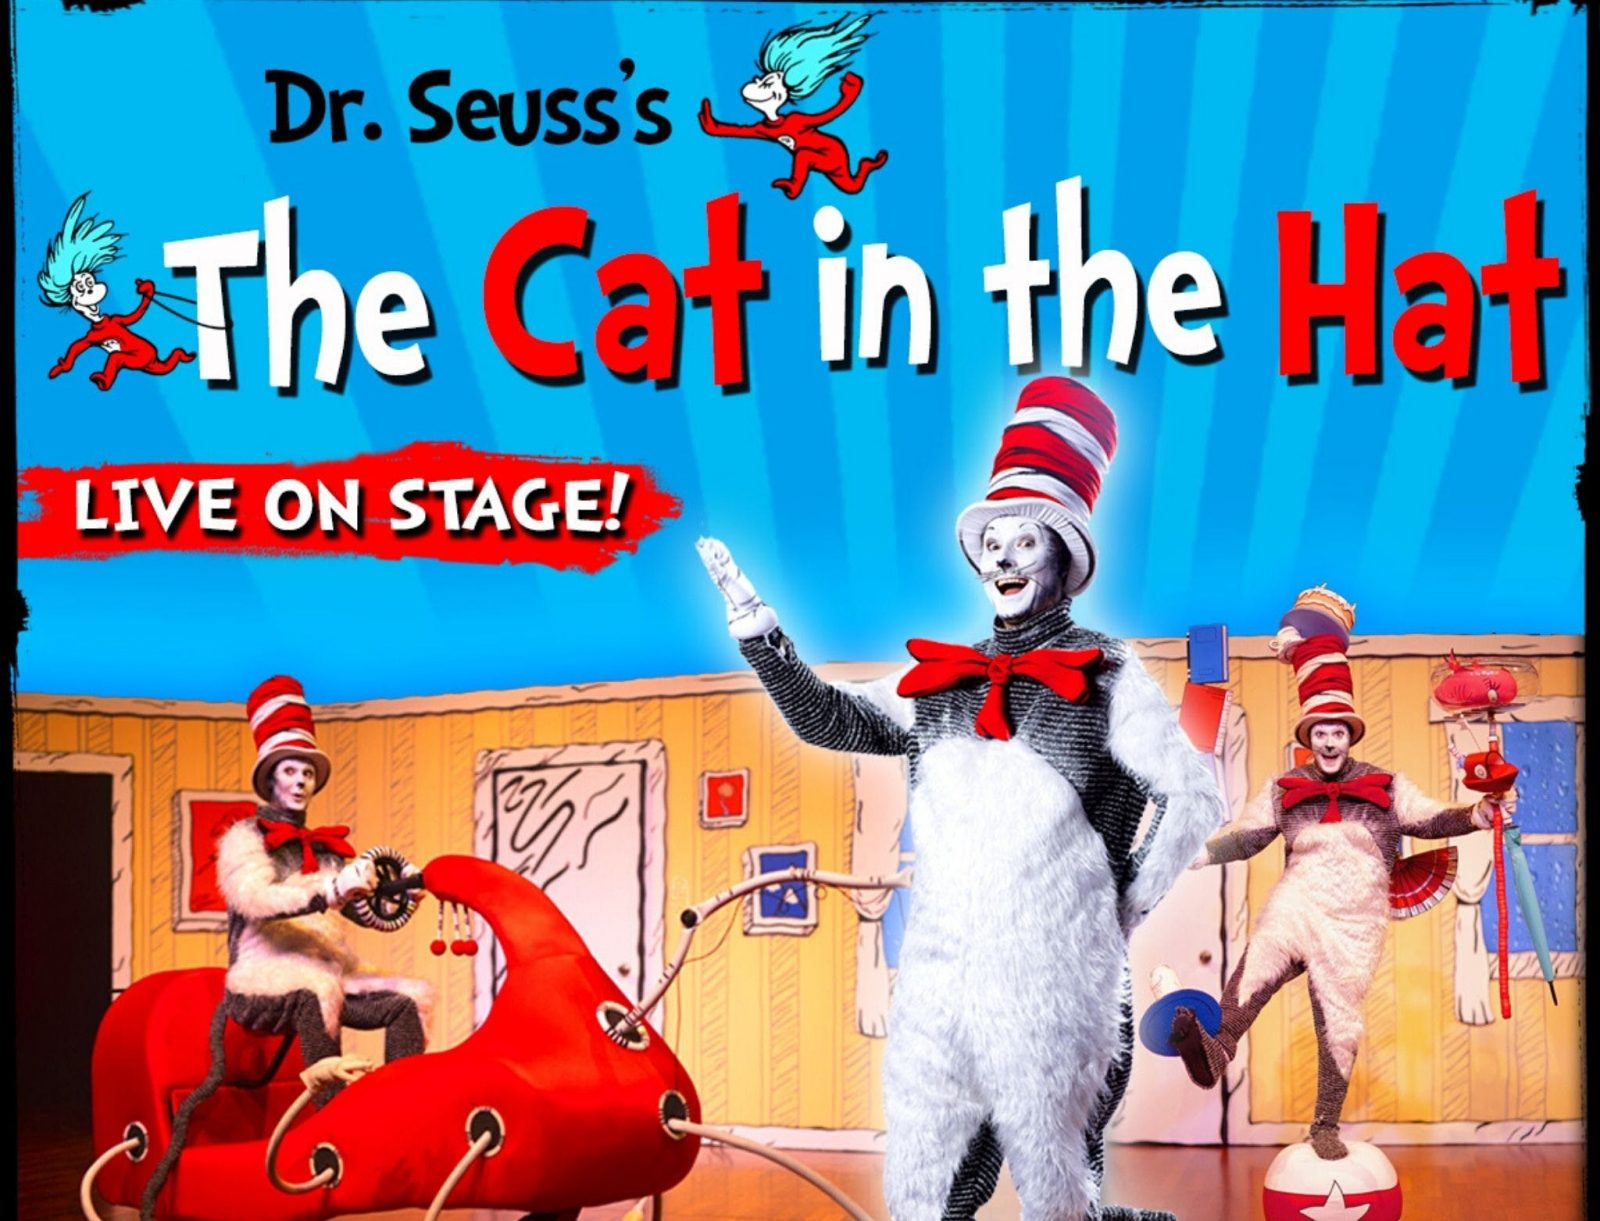 The Cat in the Hat stage show